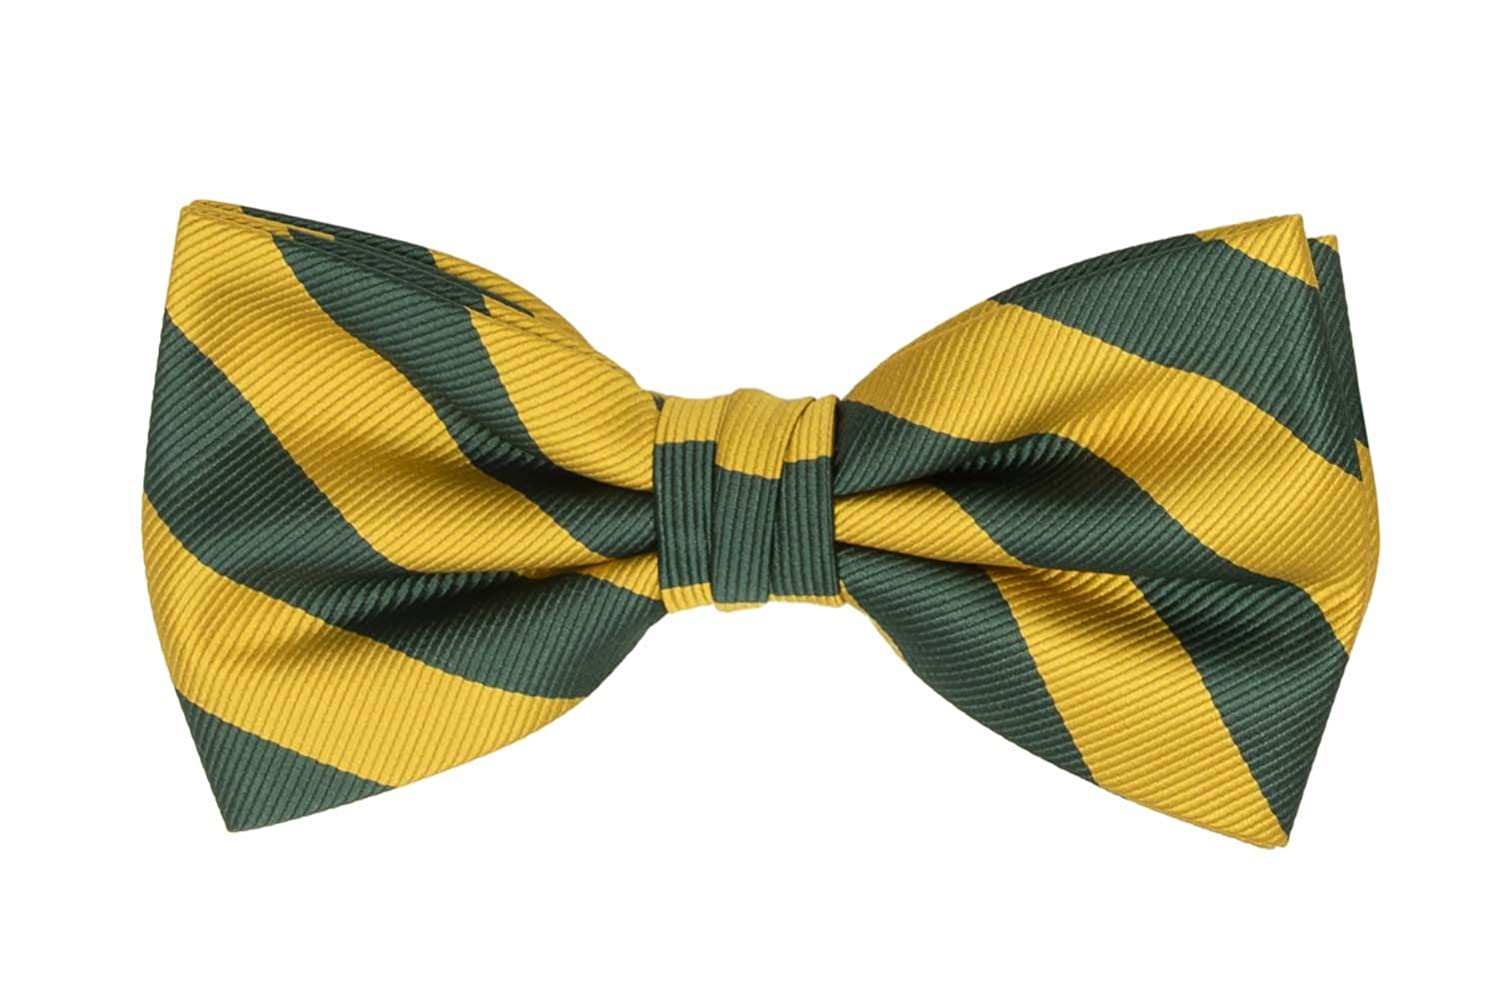 Jacob Alexander Stripe Woven Men's College Striped Pretied Bowtie JCSBT006